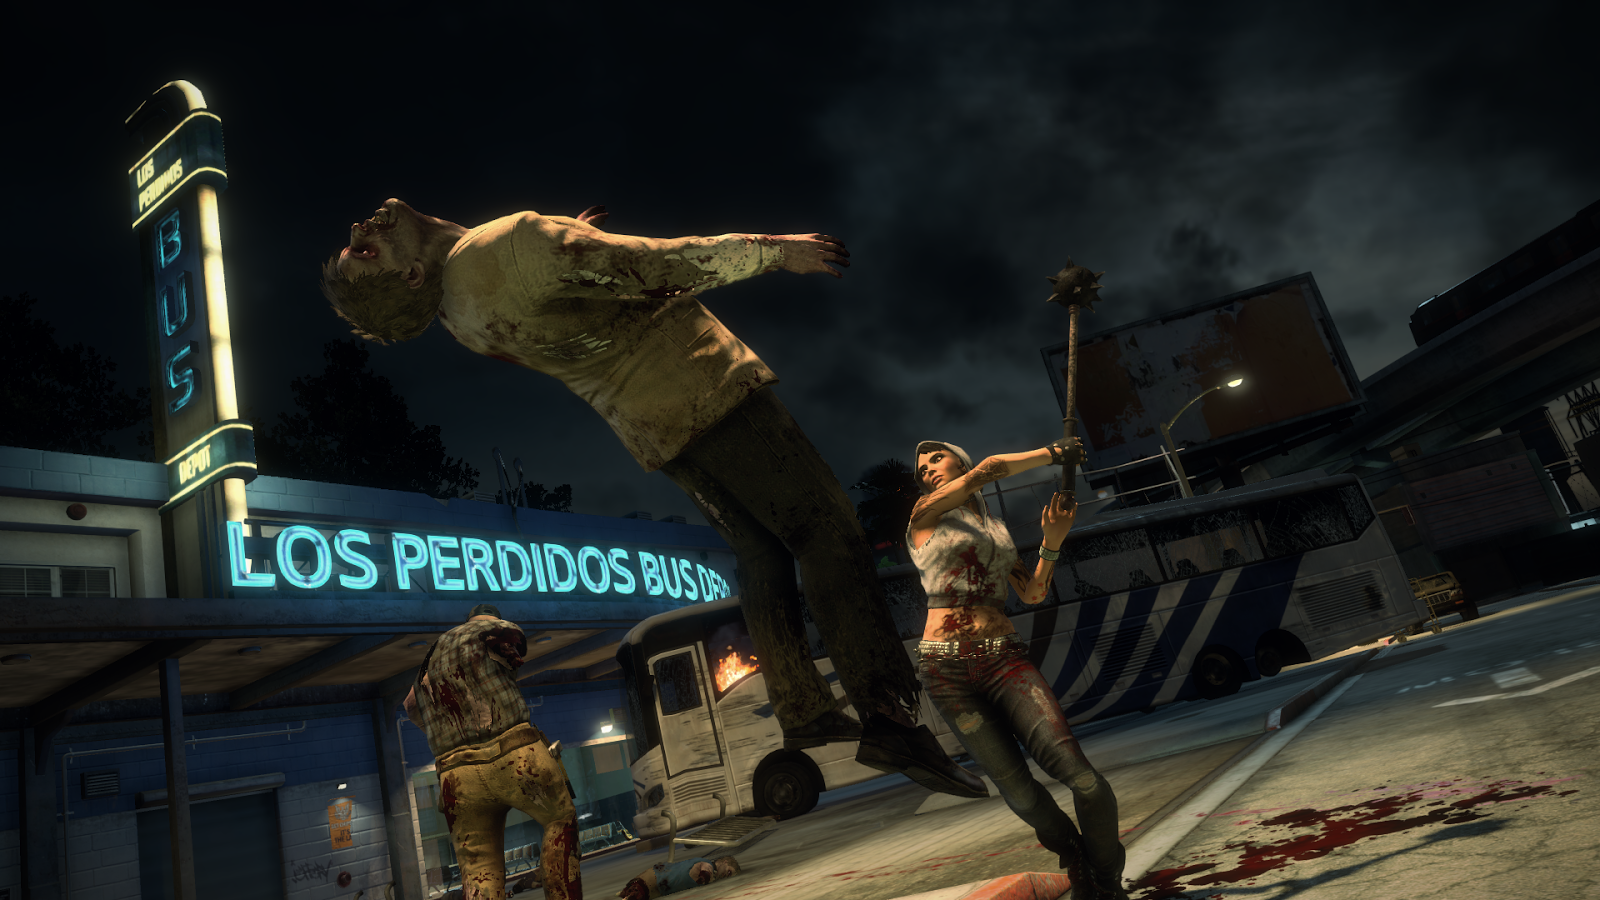 Dead Rising 3 - Fallen Angel